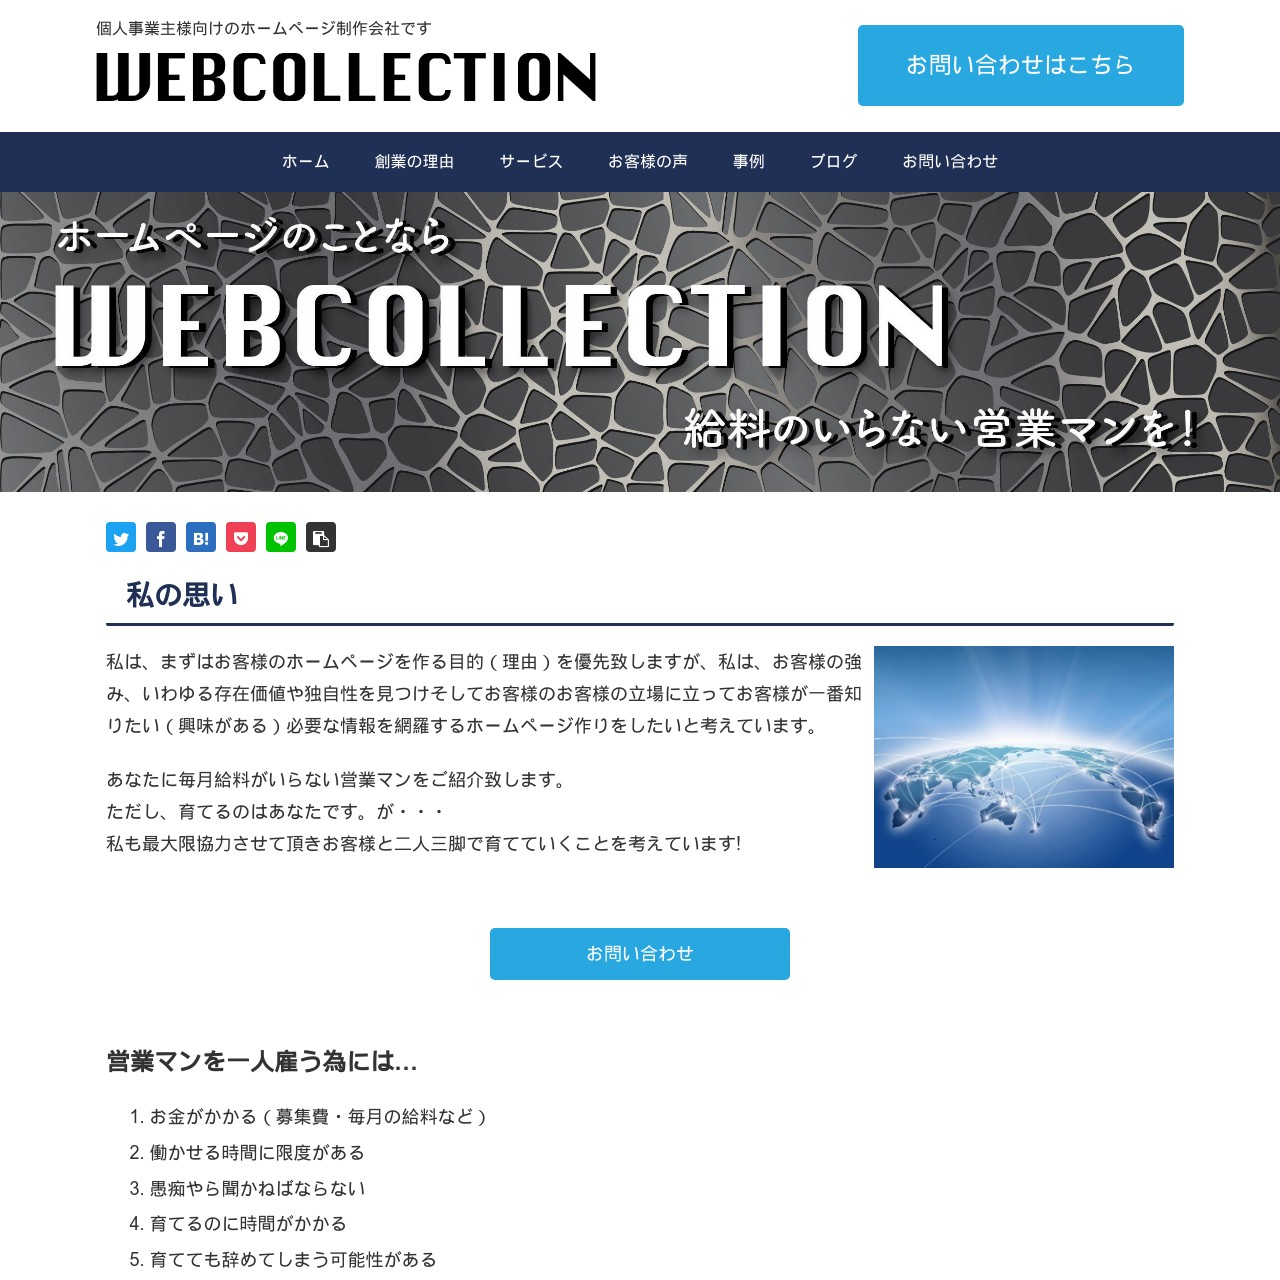 WEBCOLLECTION